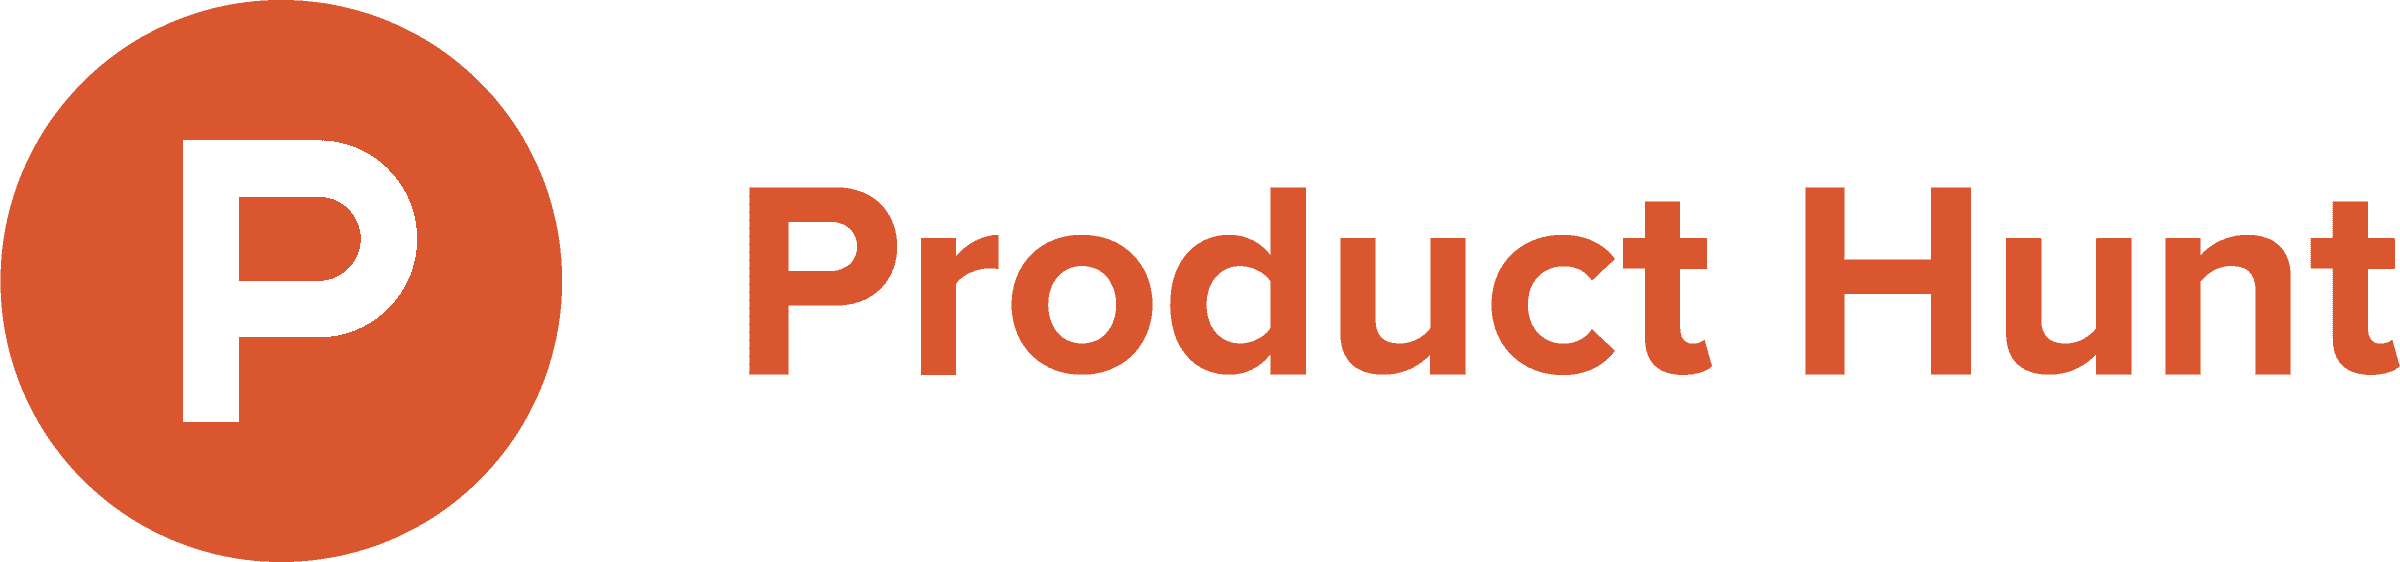 Scheduled featured on Product Hunt